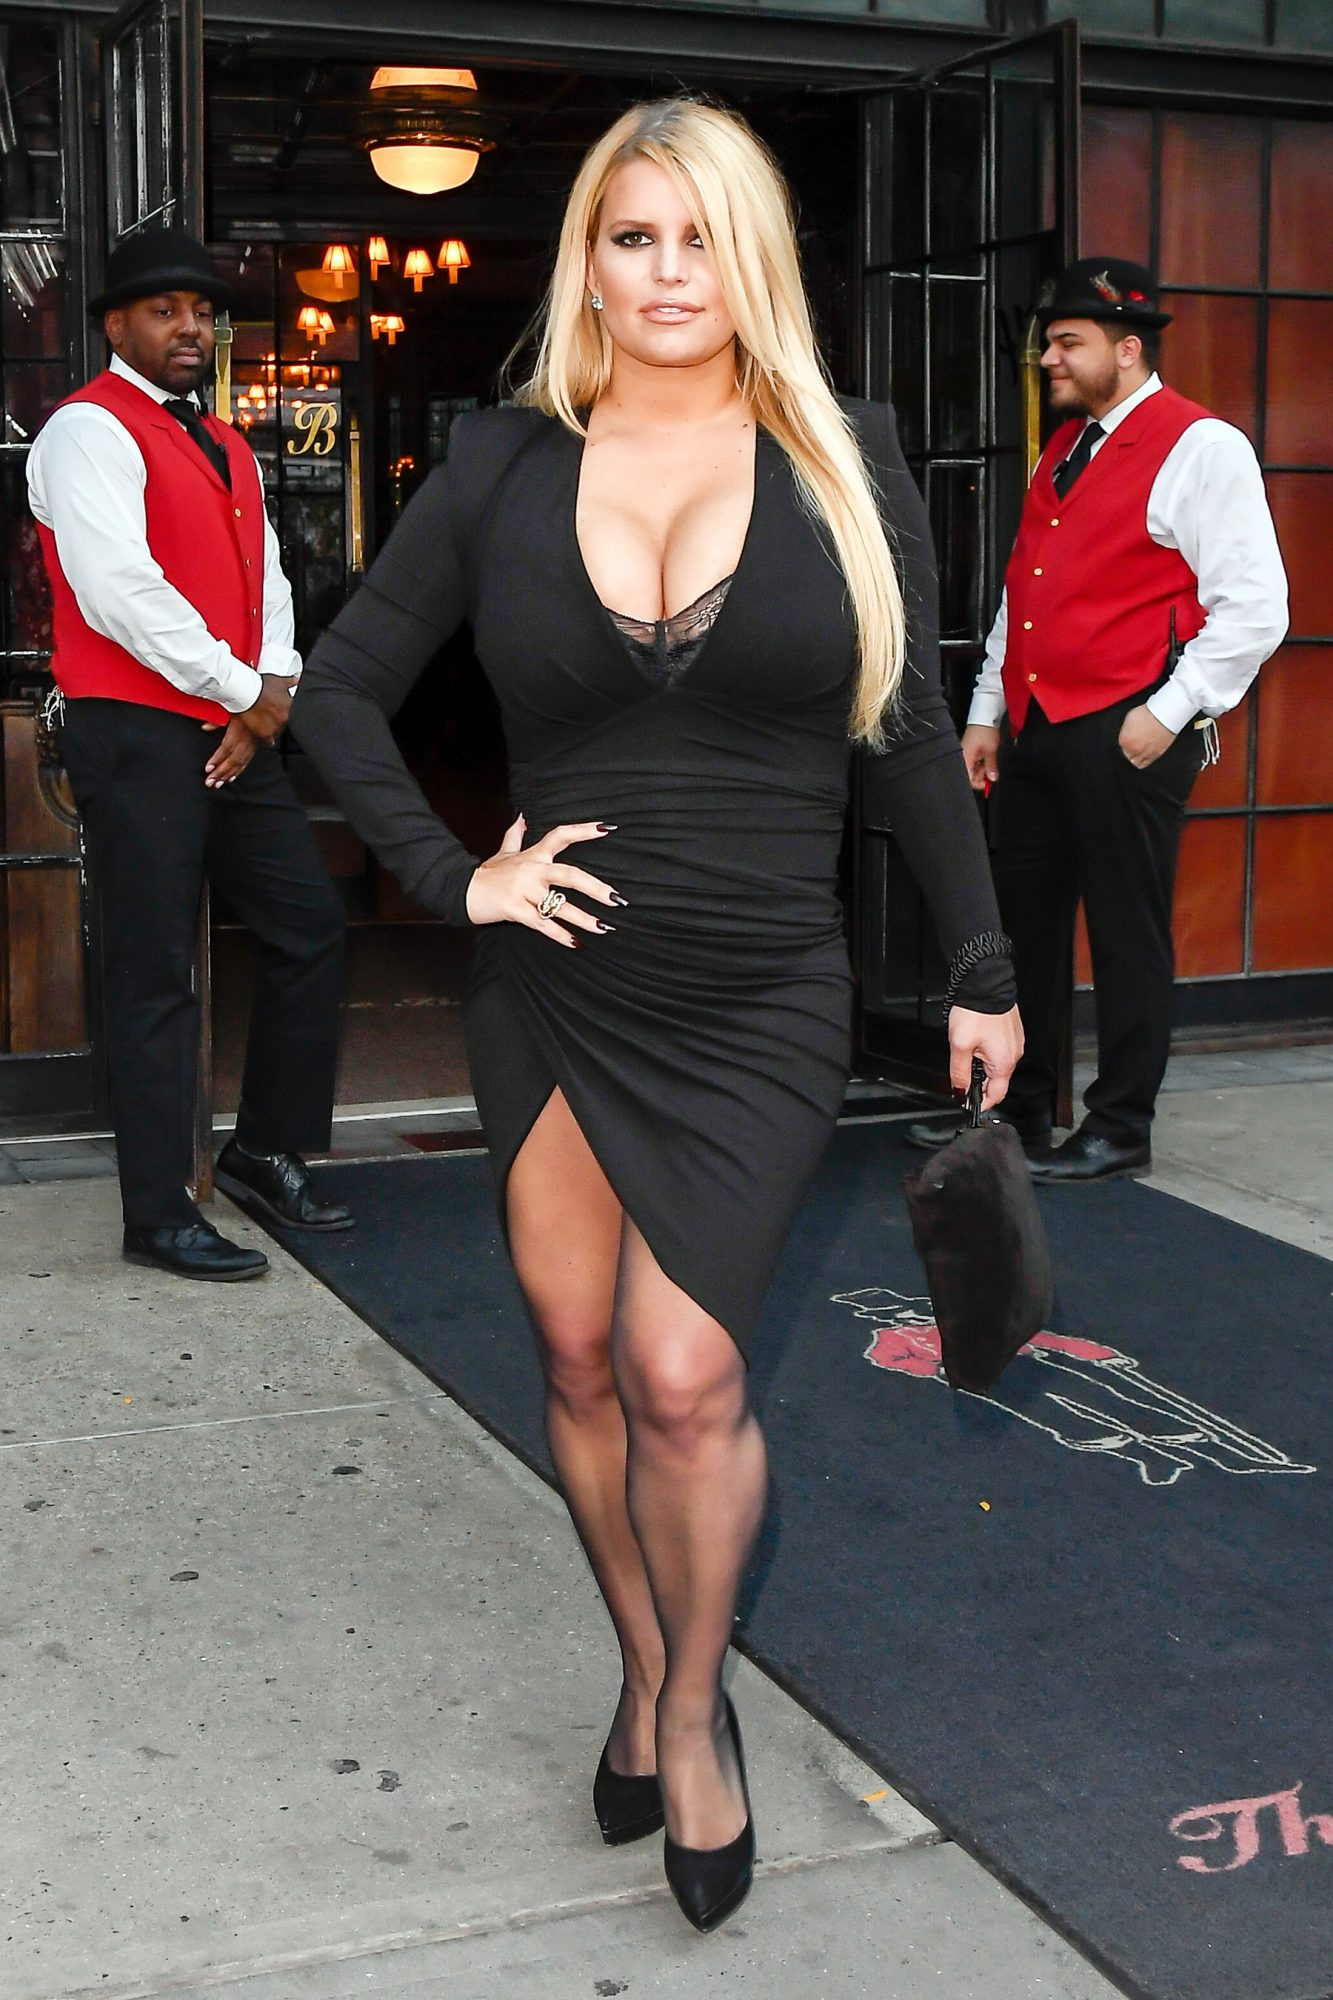 Jessica Simpson Lost 100 Lbs. with This Holistic Method ...